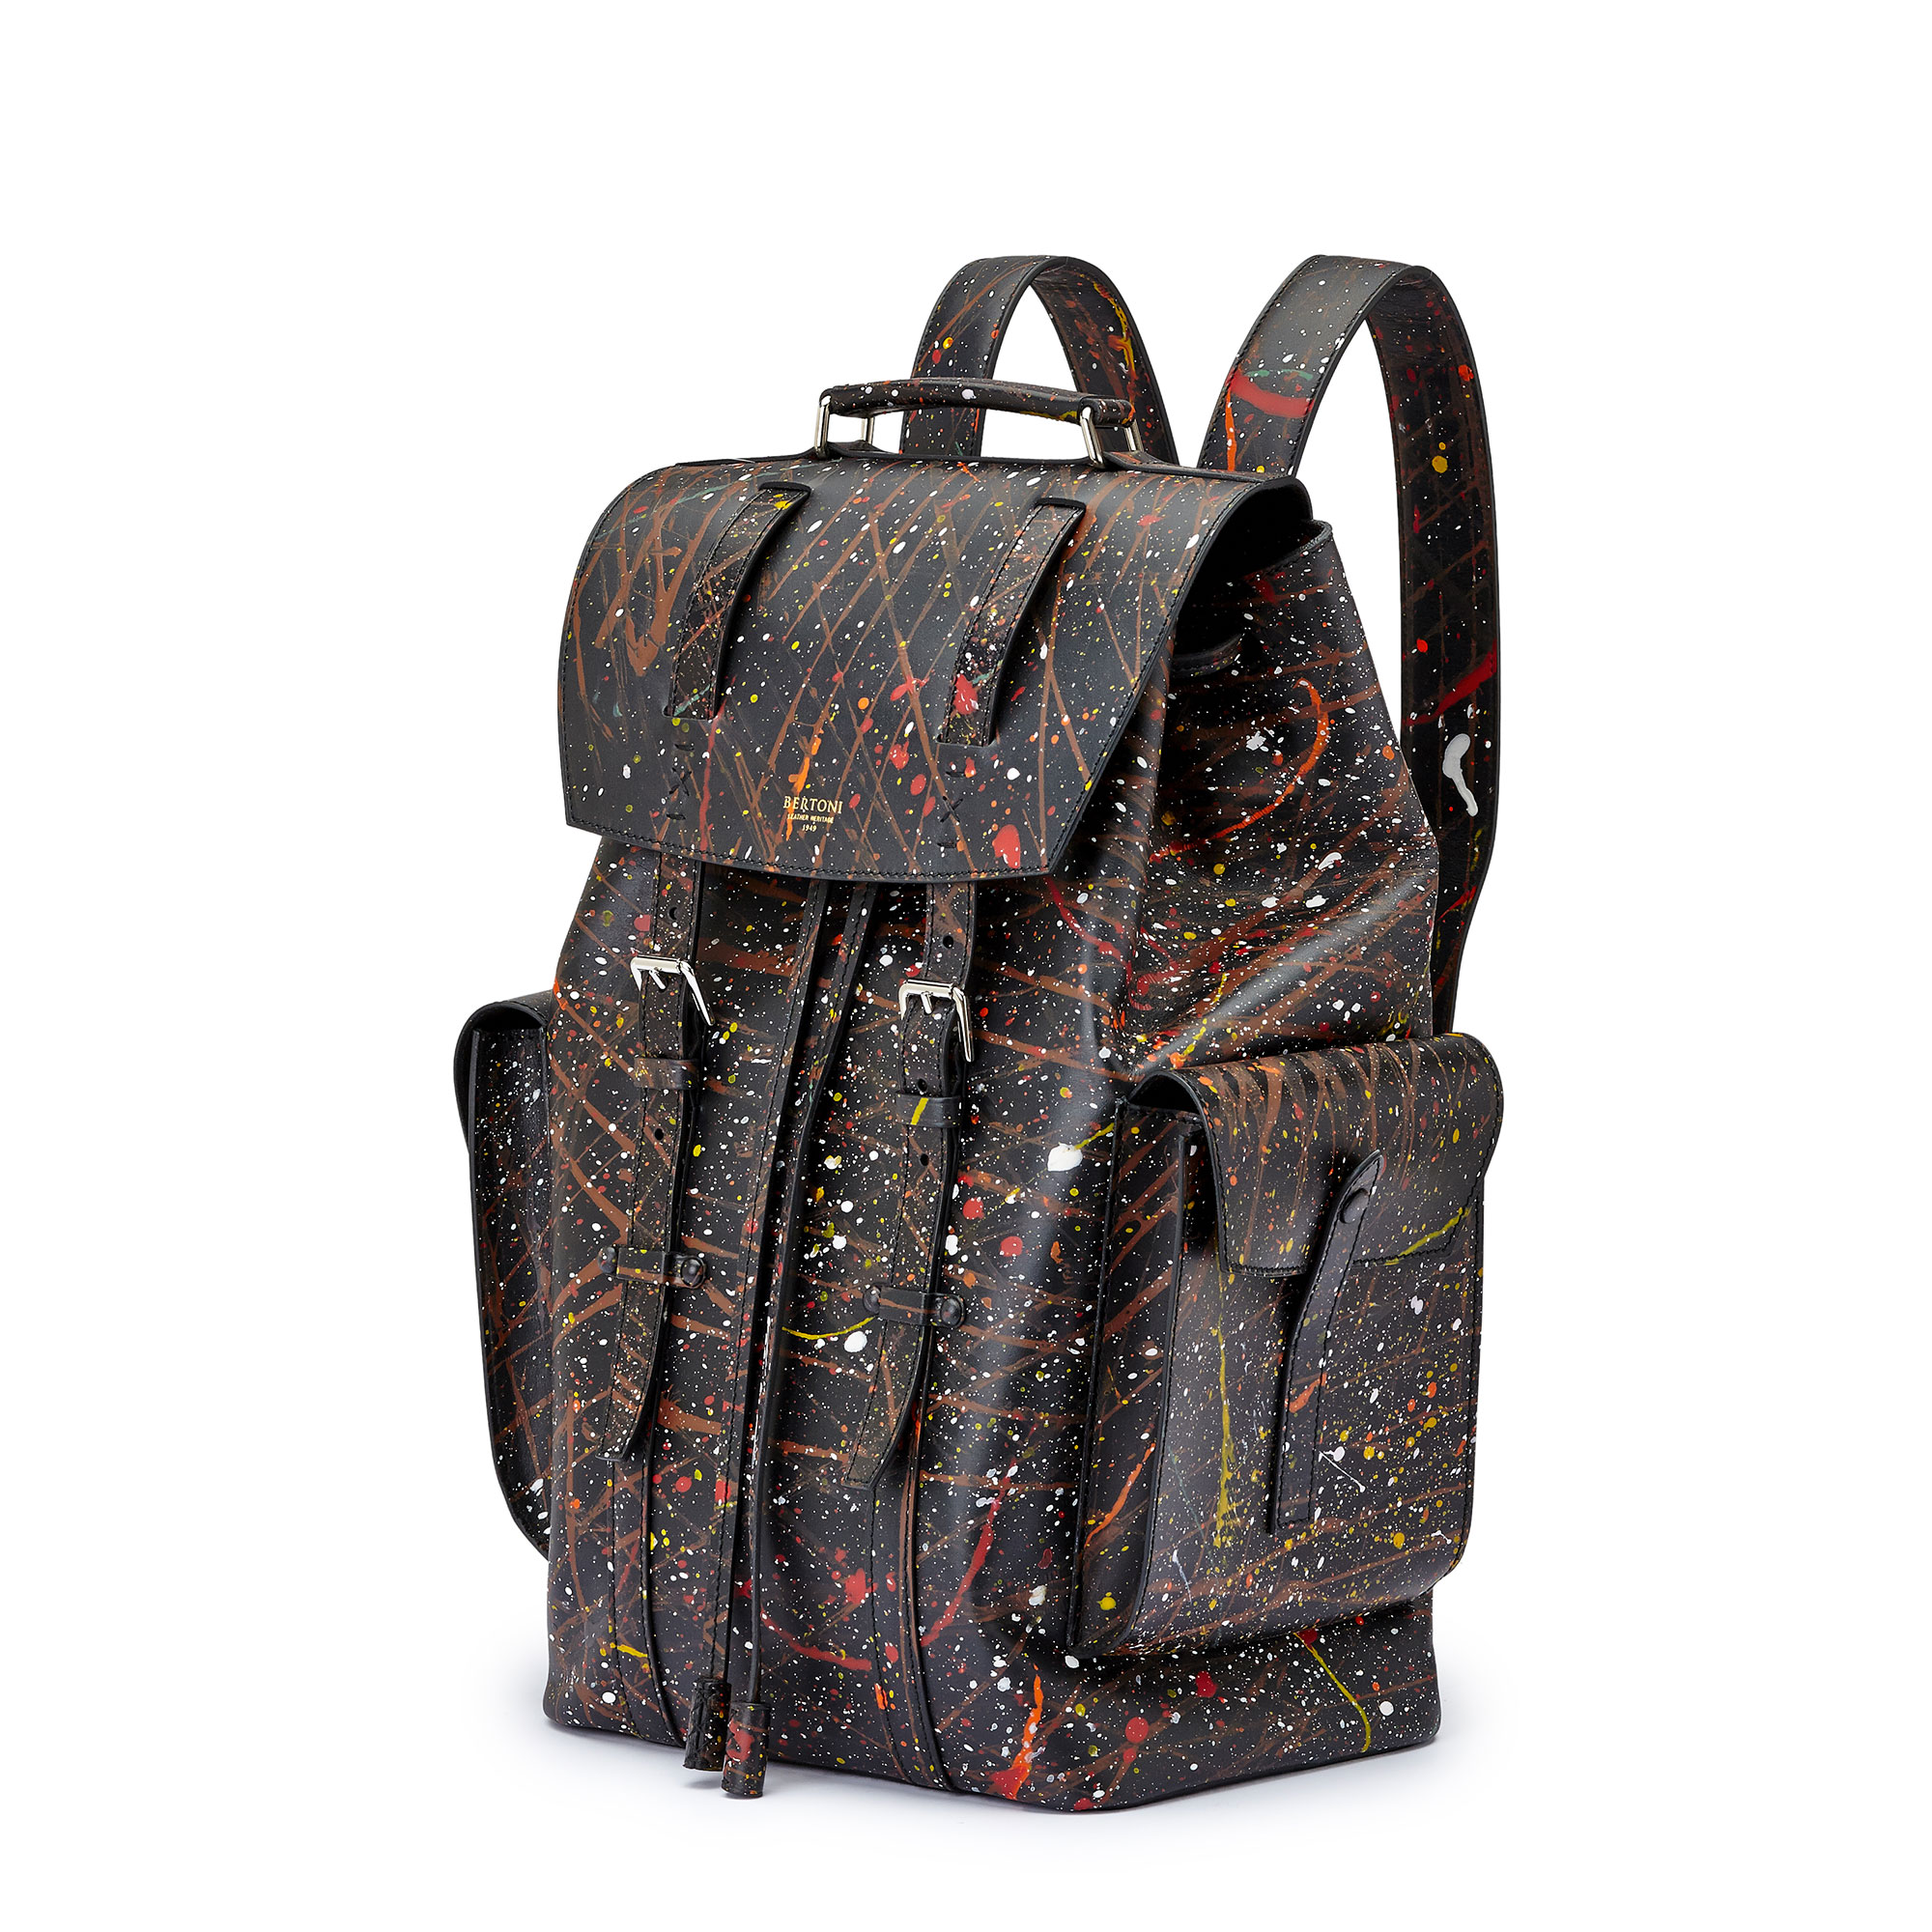 The black with edgy art french calf Traveller Backpack by Bertoni 1949 02